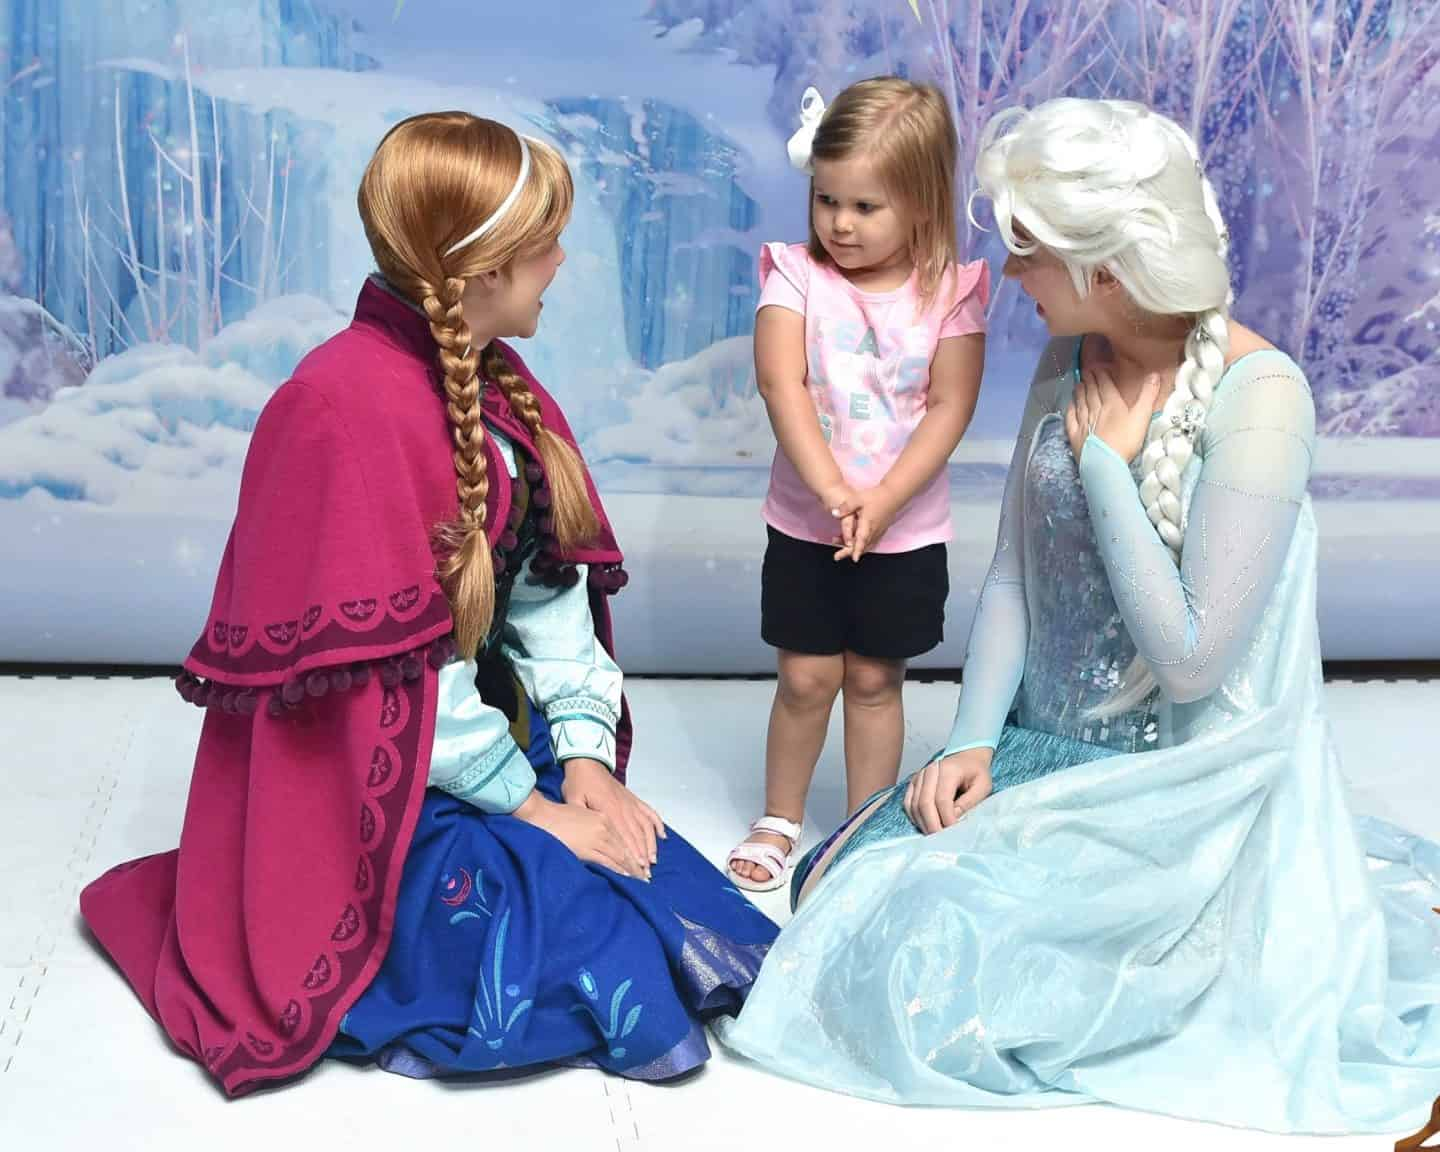 frozen meet and greet aboard the Disney cruise.